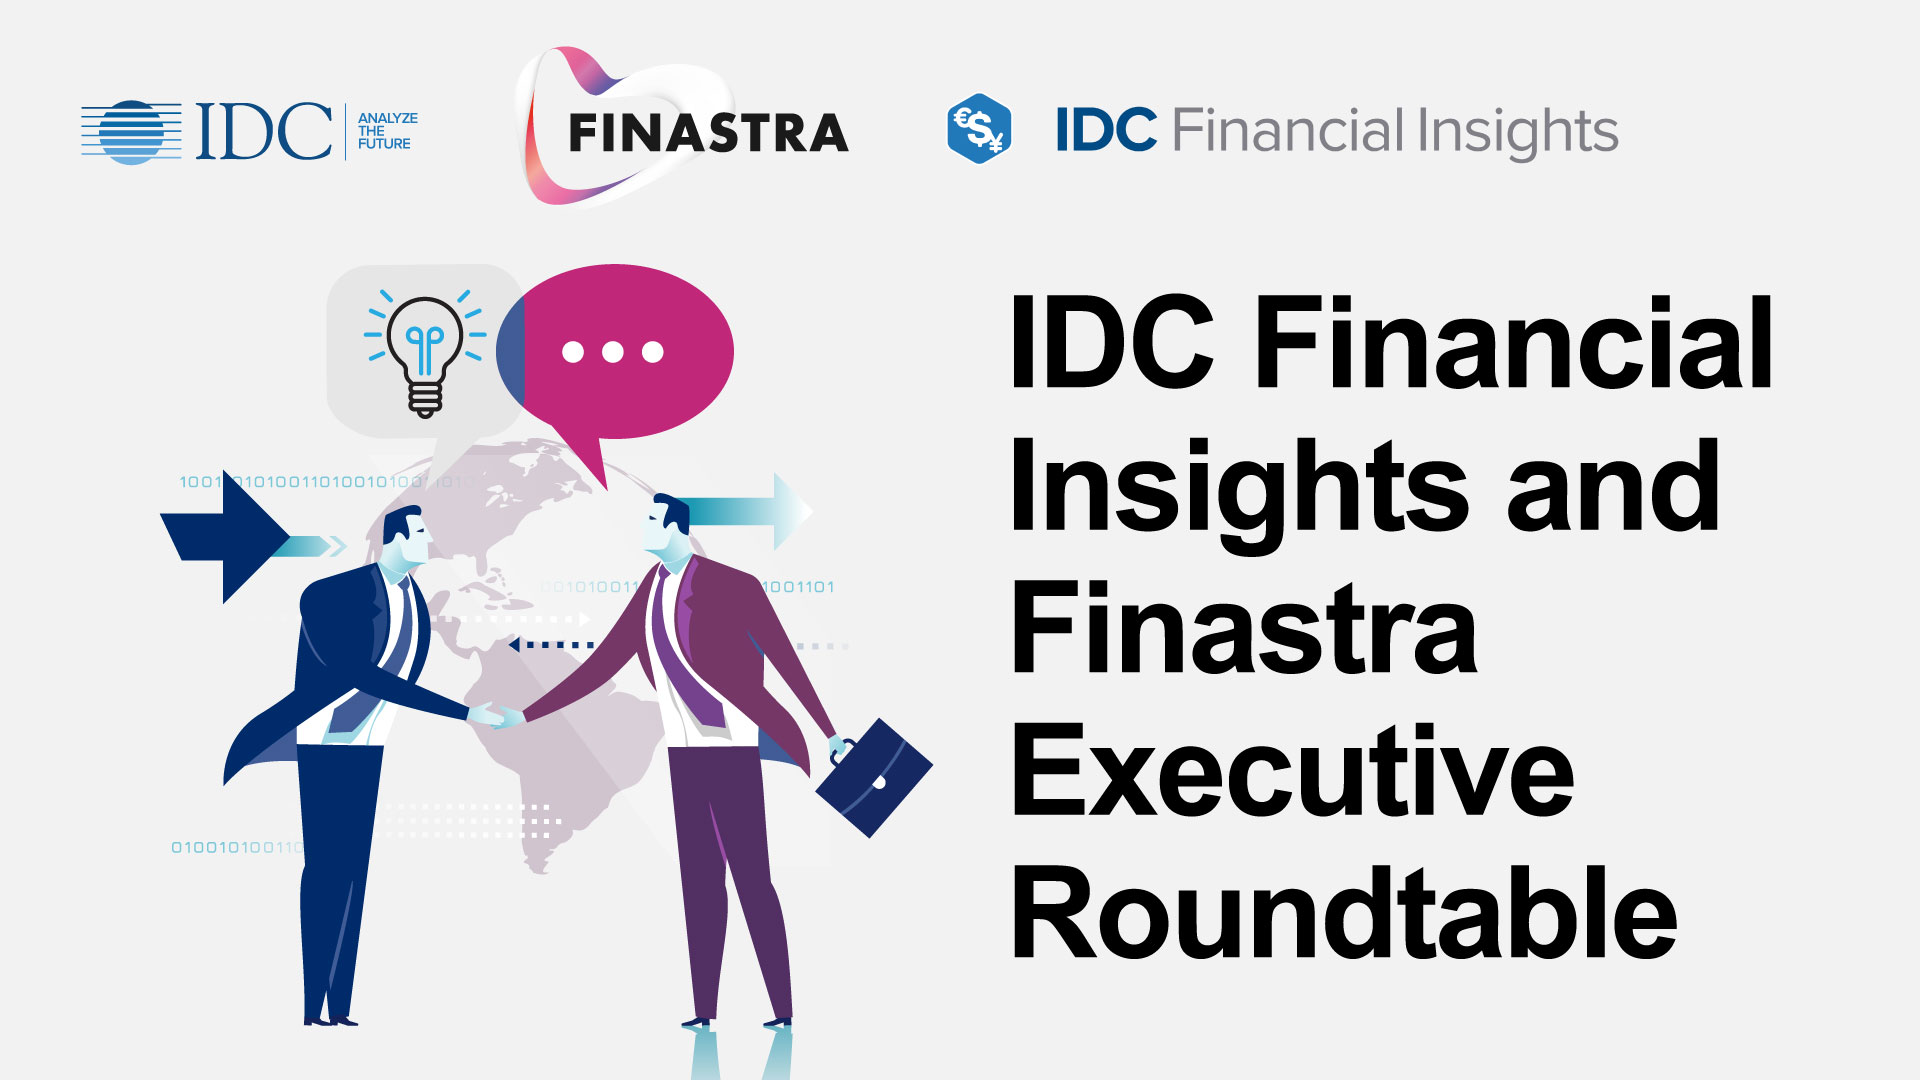 IDC & Finastra Executive Roundtable